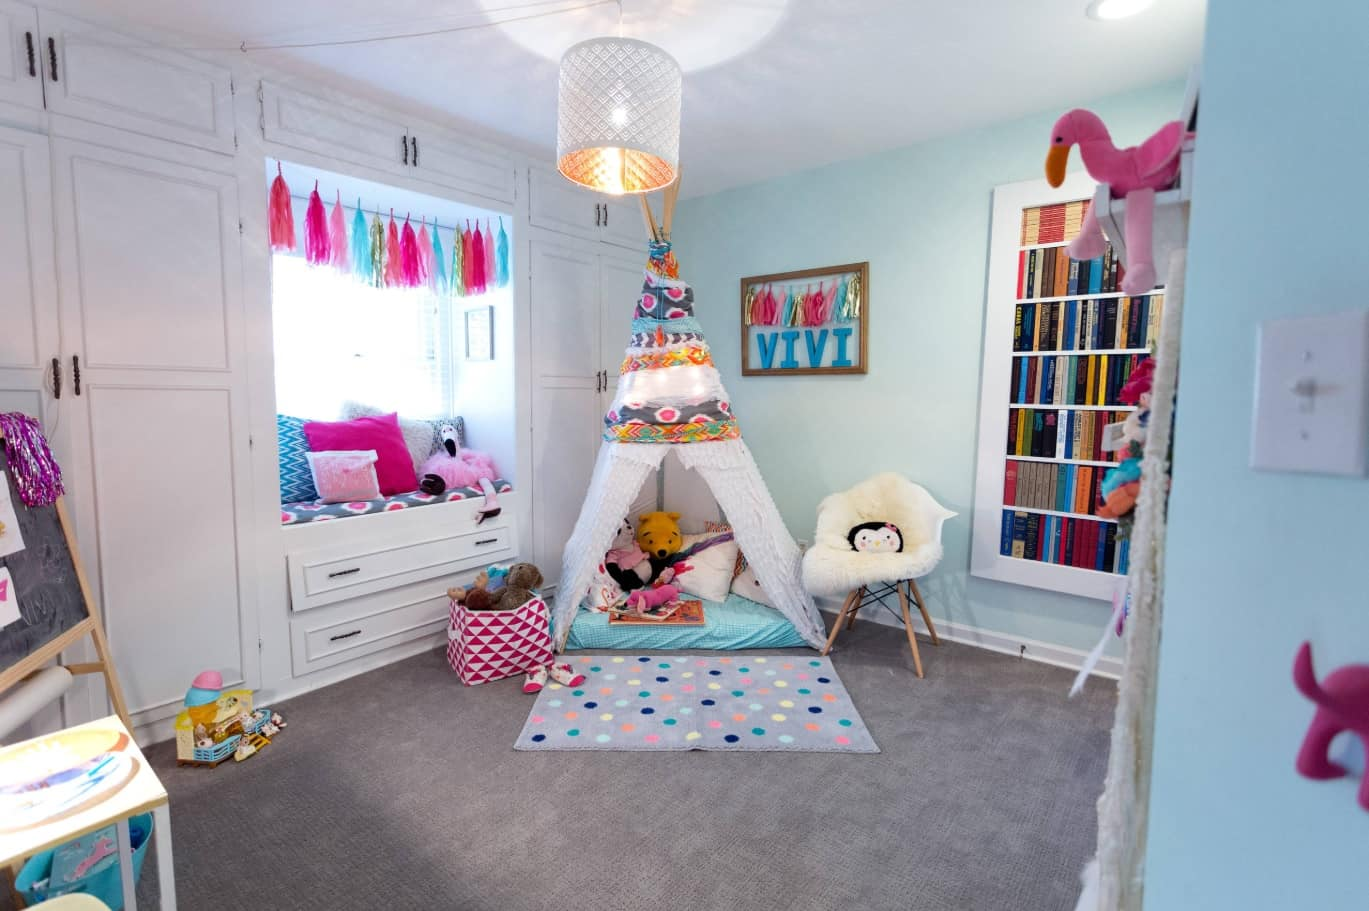 Neat turquoise decoration with storage system and relax place at the window and wigwam for children's room